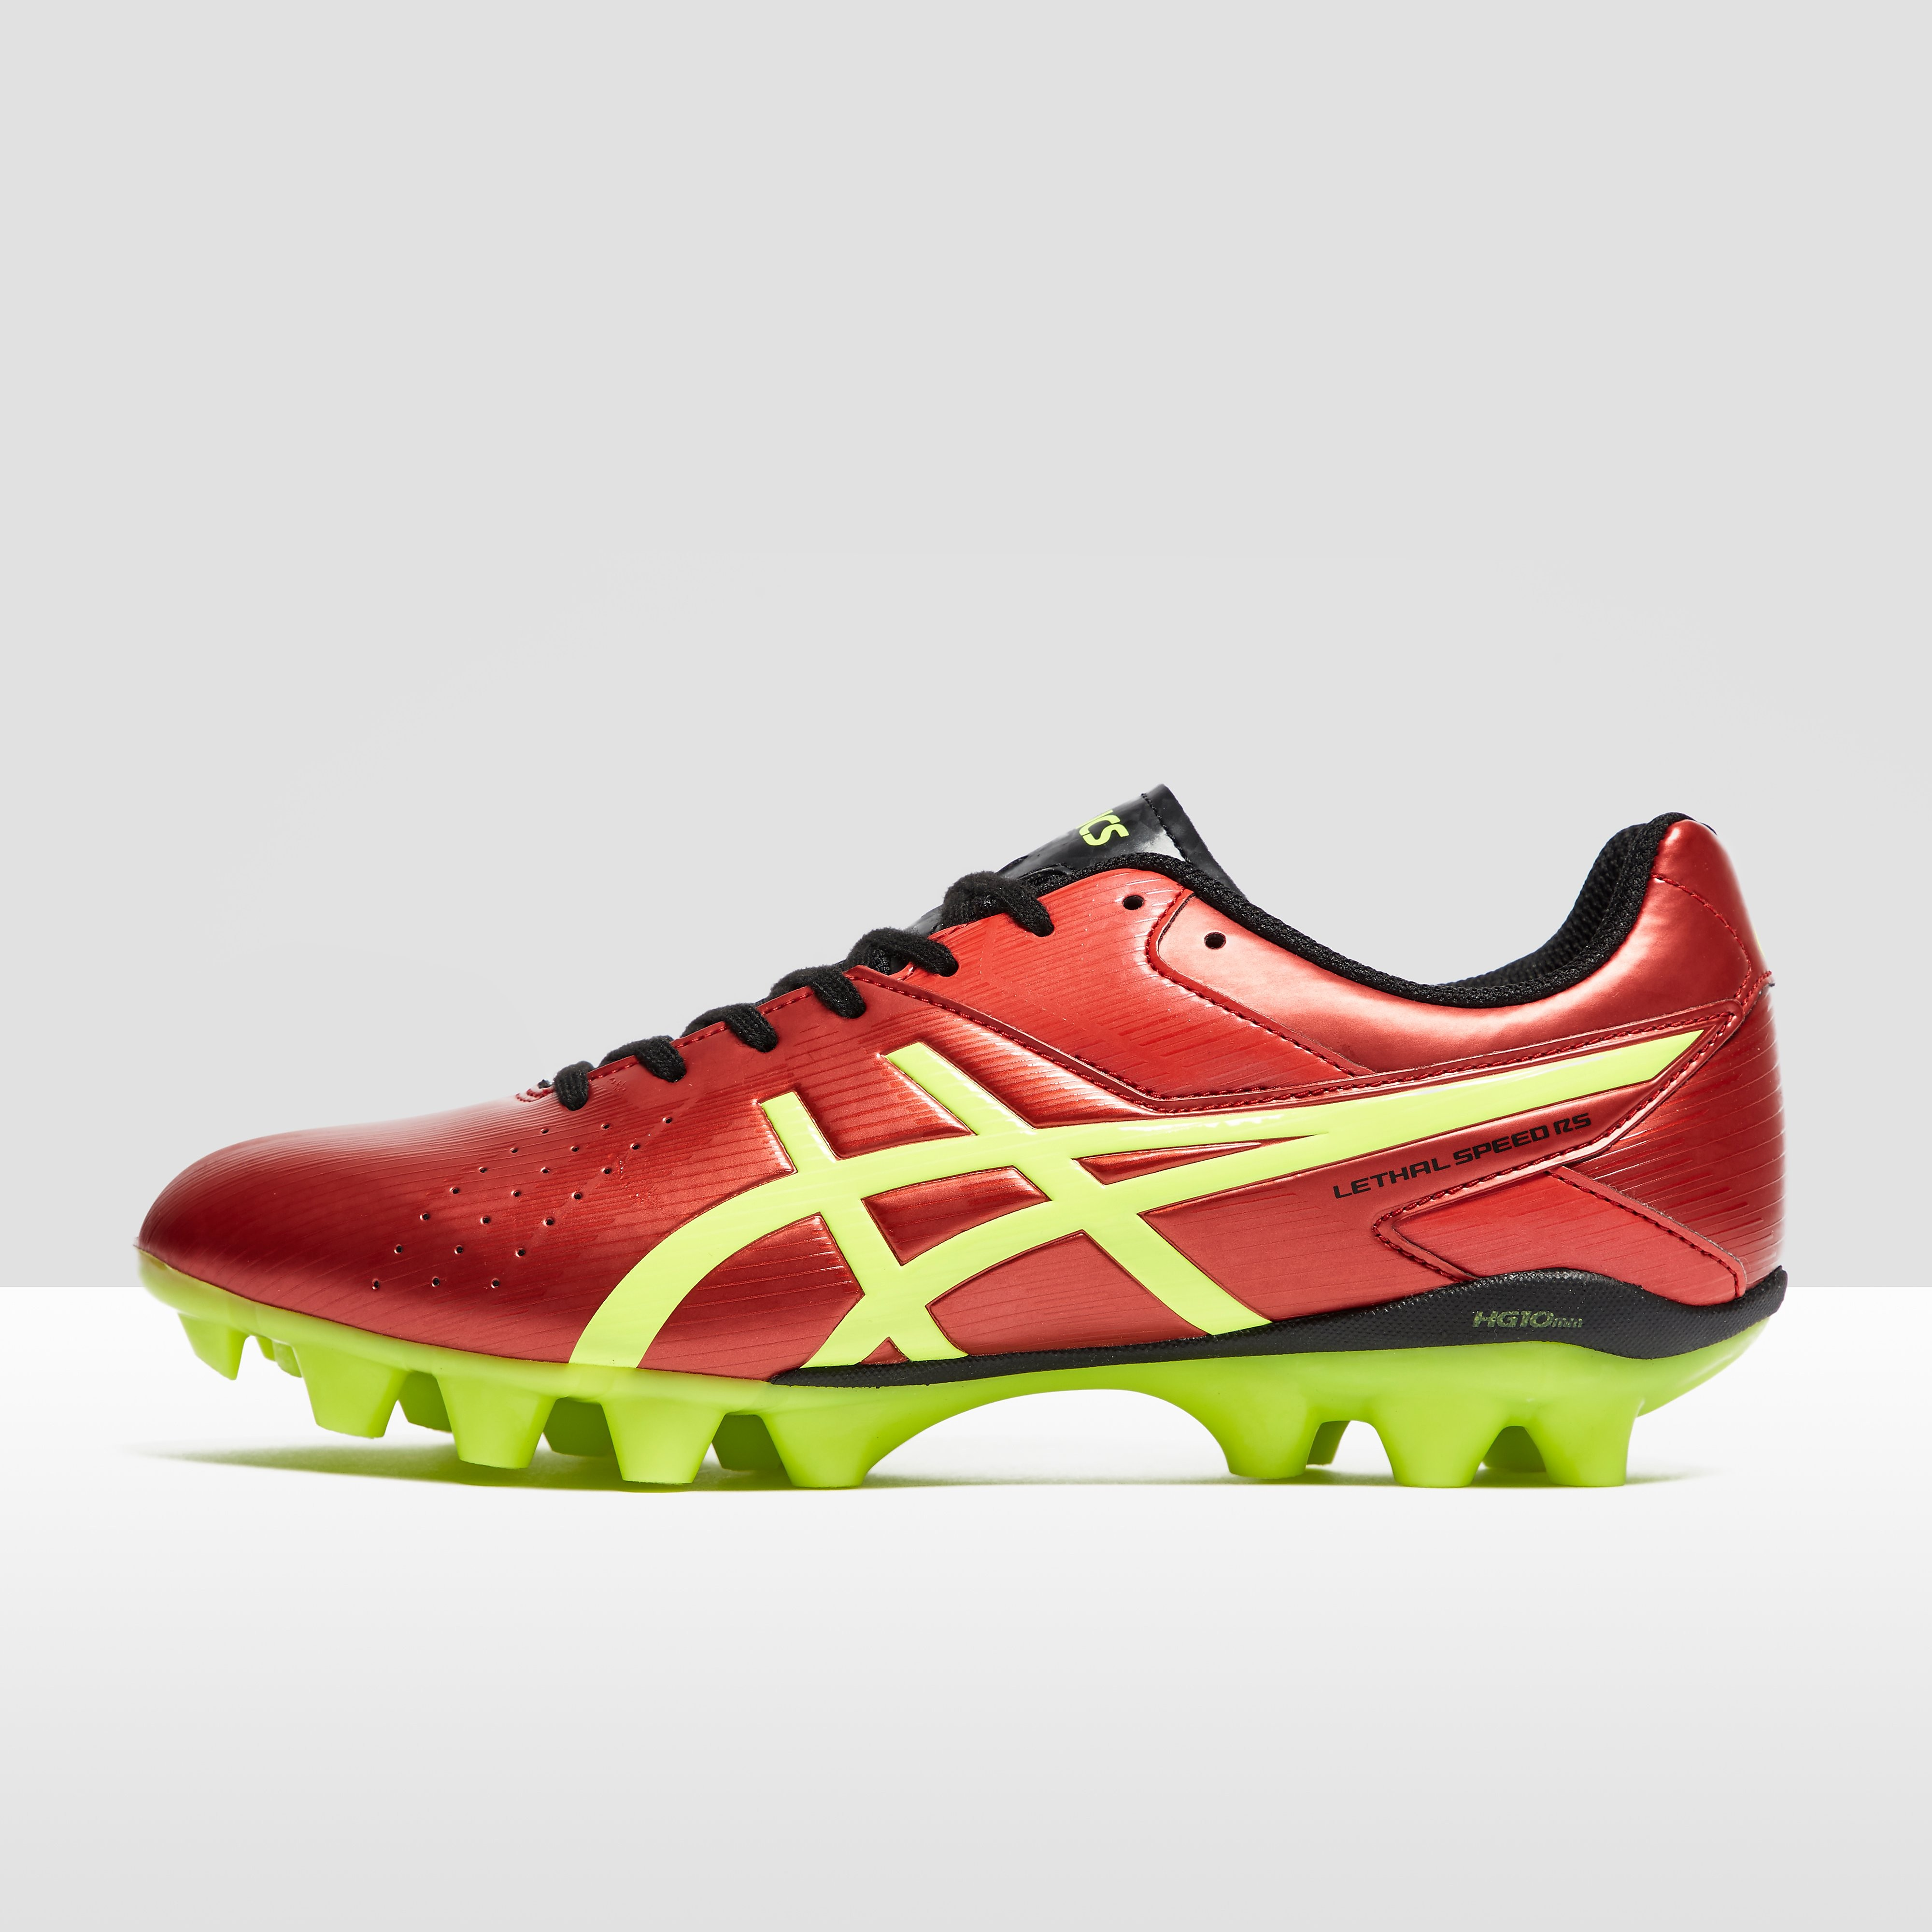 ASICS Lethal Speed RS Men's Football Boots